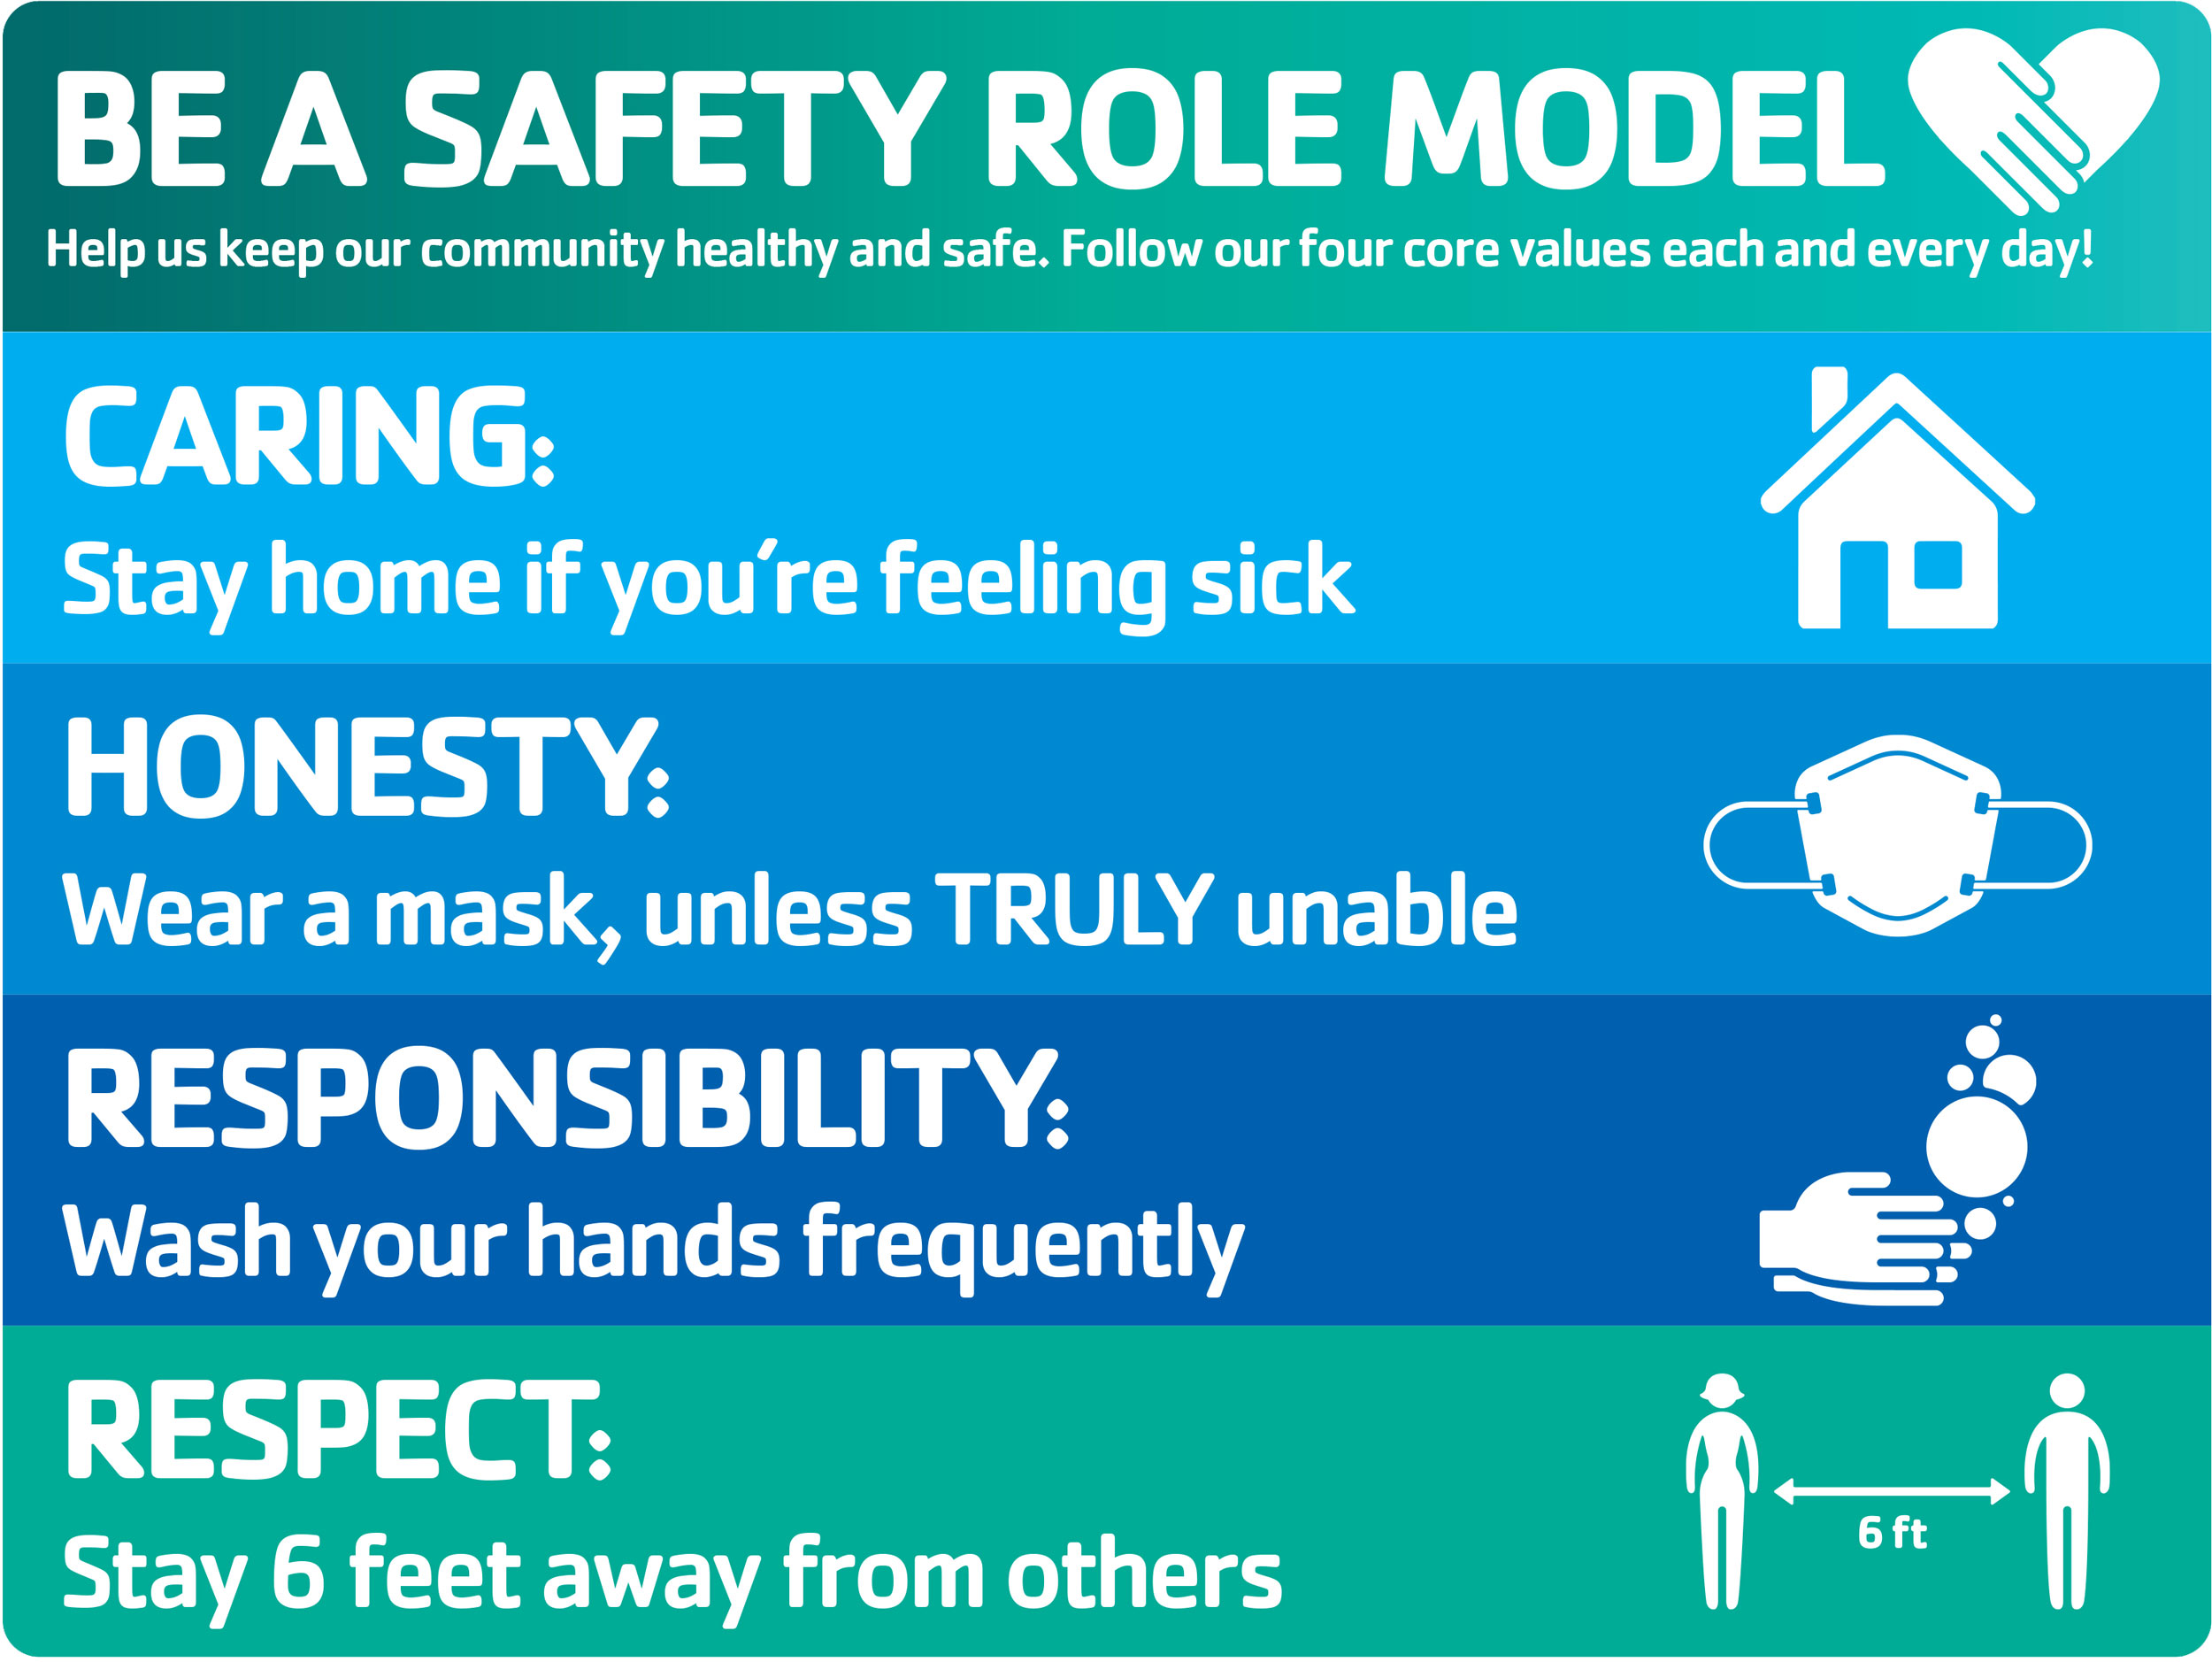 Safety Role Model